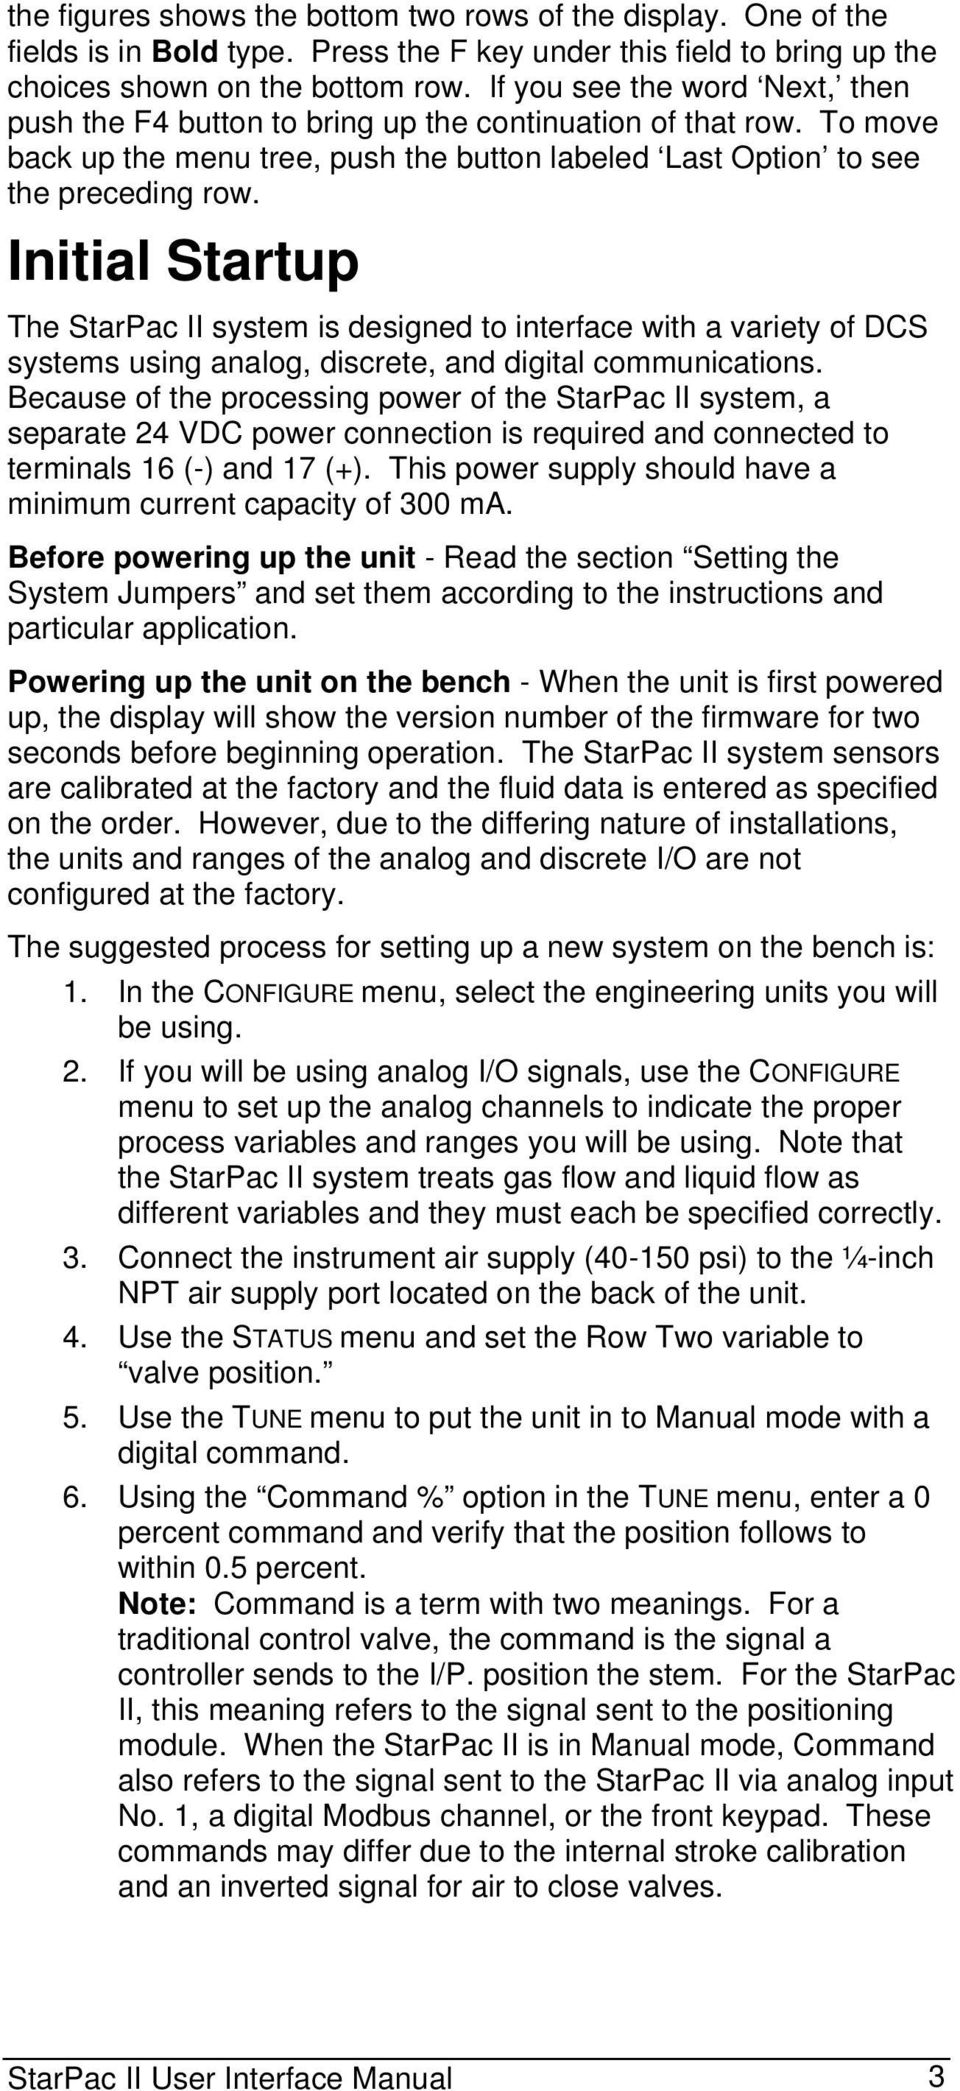 Initial Startup The StarPac II system is designed to interface with a variety of DCS systems using analog, discrete, and digital communications.